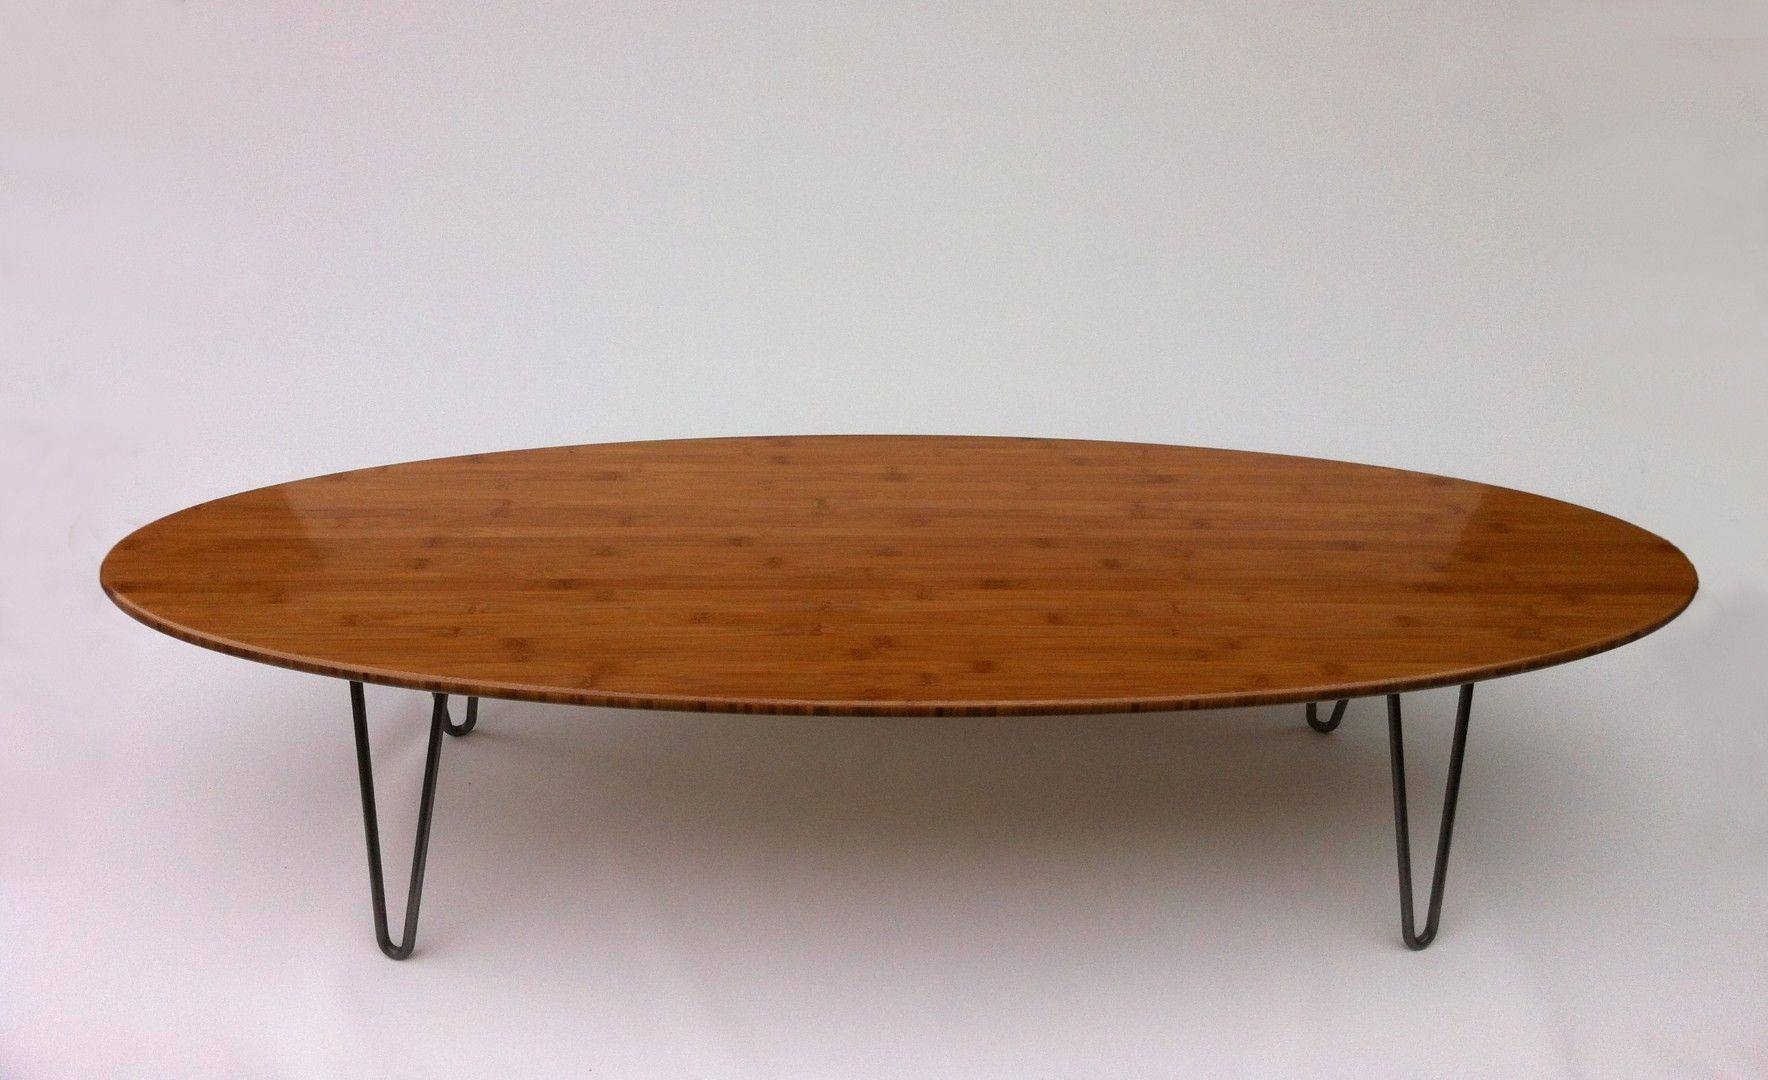 "Buy Custom 47"" Surf Board Shaped Elliptical Mid Century Modern Throughout Coffee Tables With Oval Shape (View 5 of 30)"